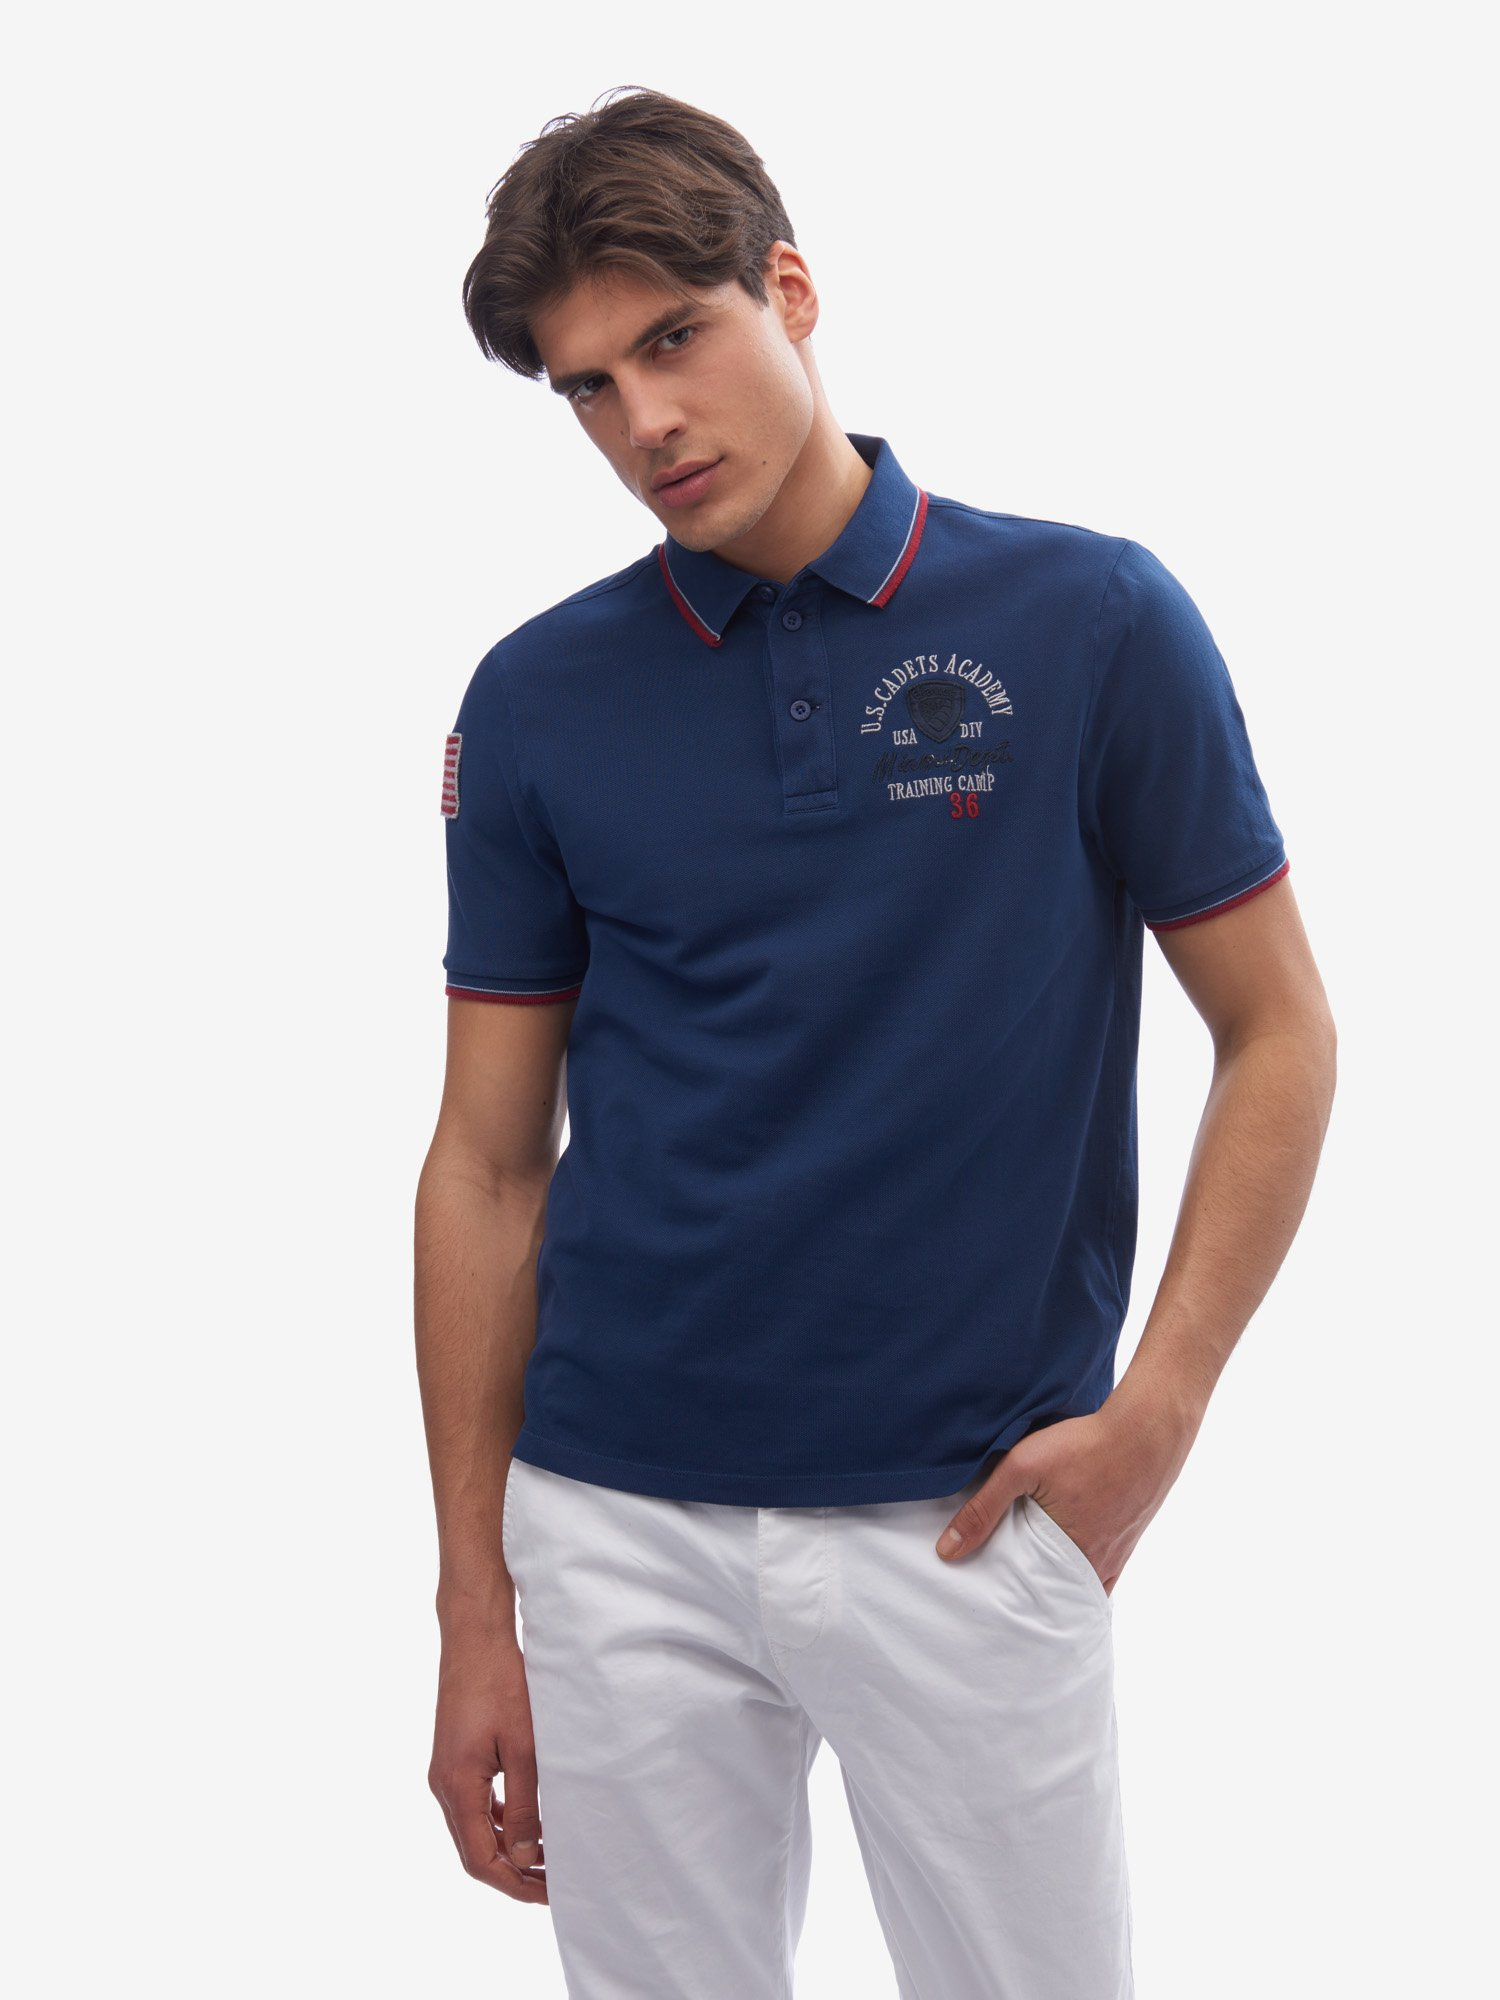 POLOSHIRT MIAMI DEPARTMENT - Blauer